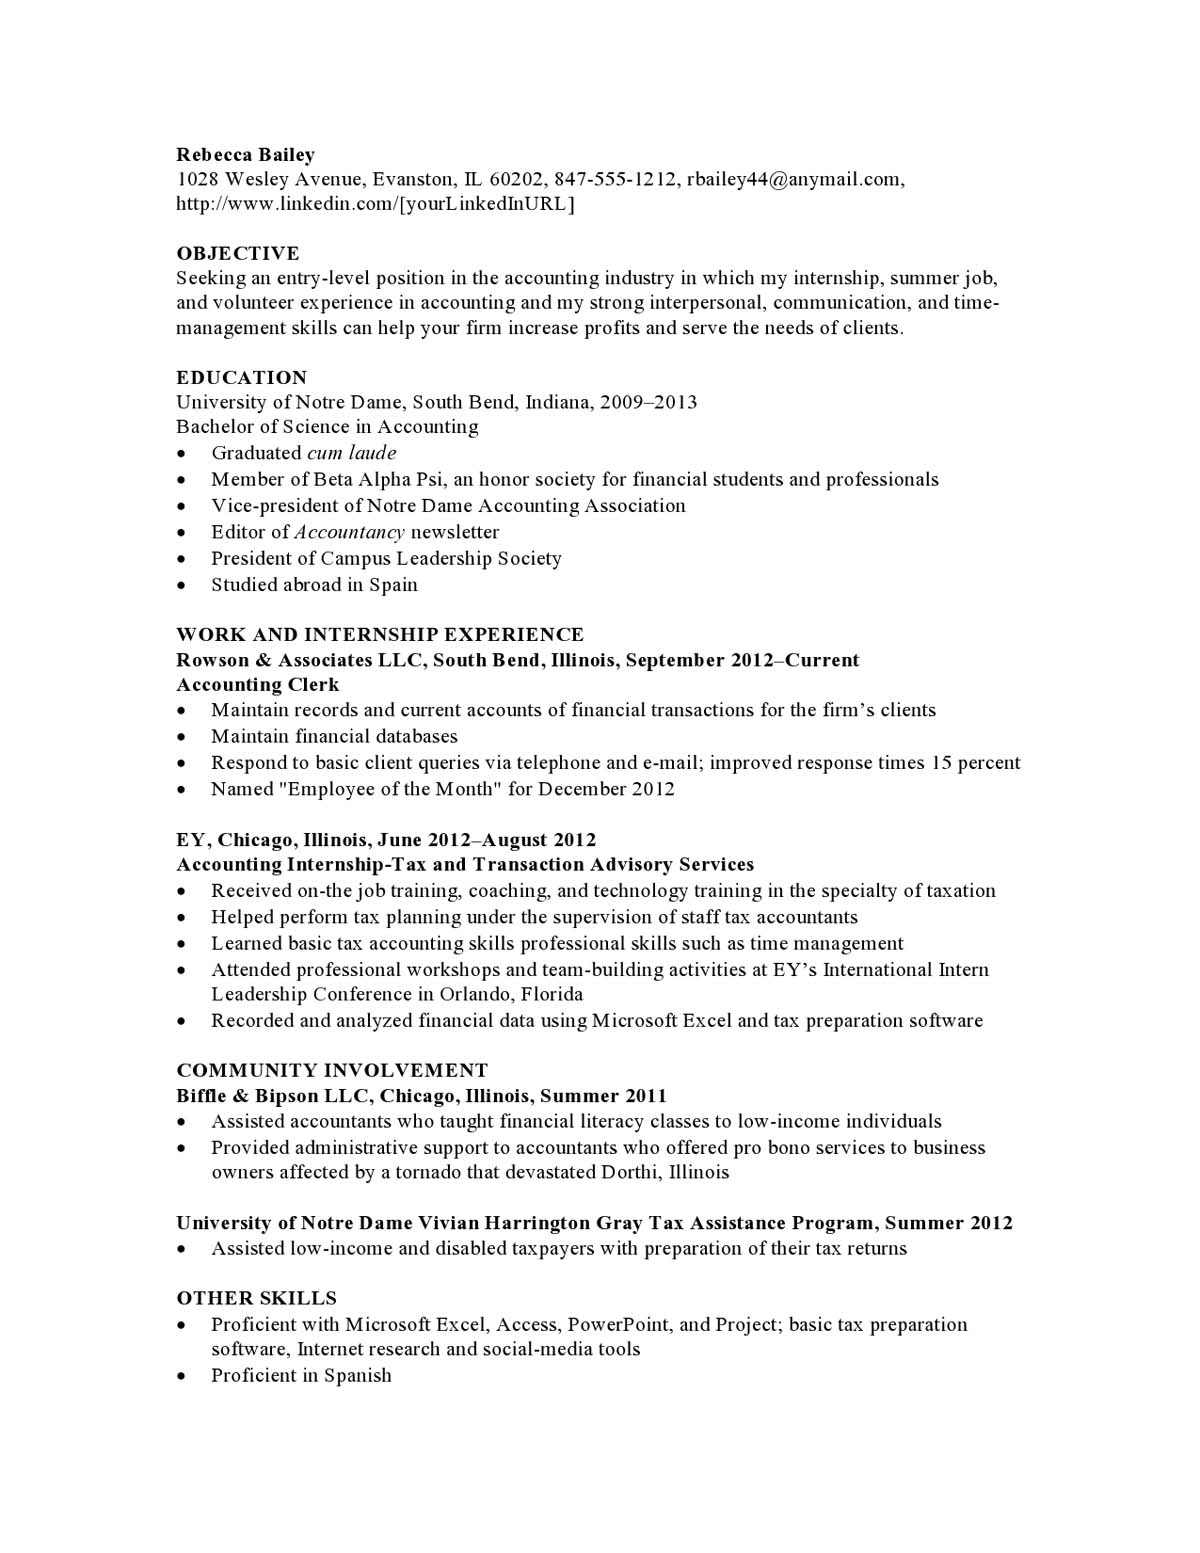 resume samples templates examples vault experience template crescoact19 tips for great Resume Experience Resume Template